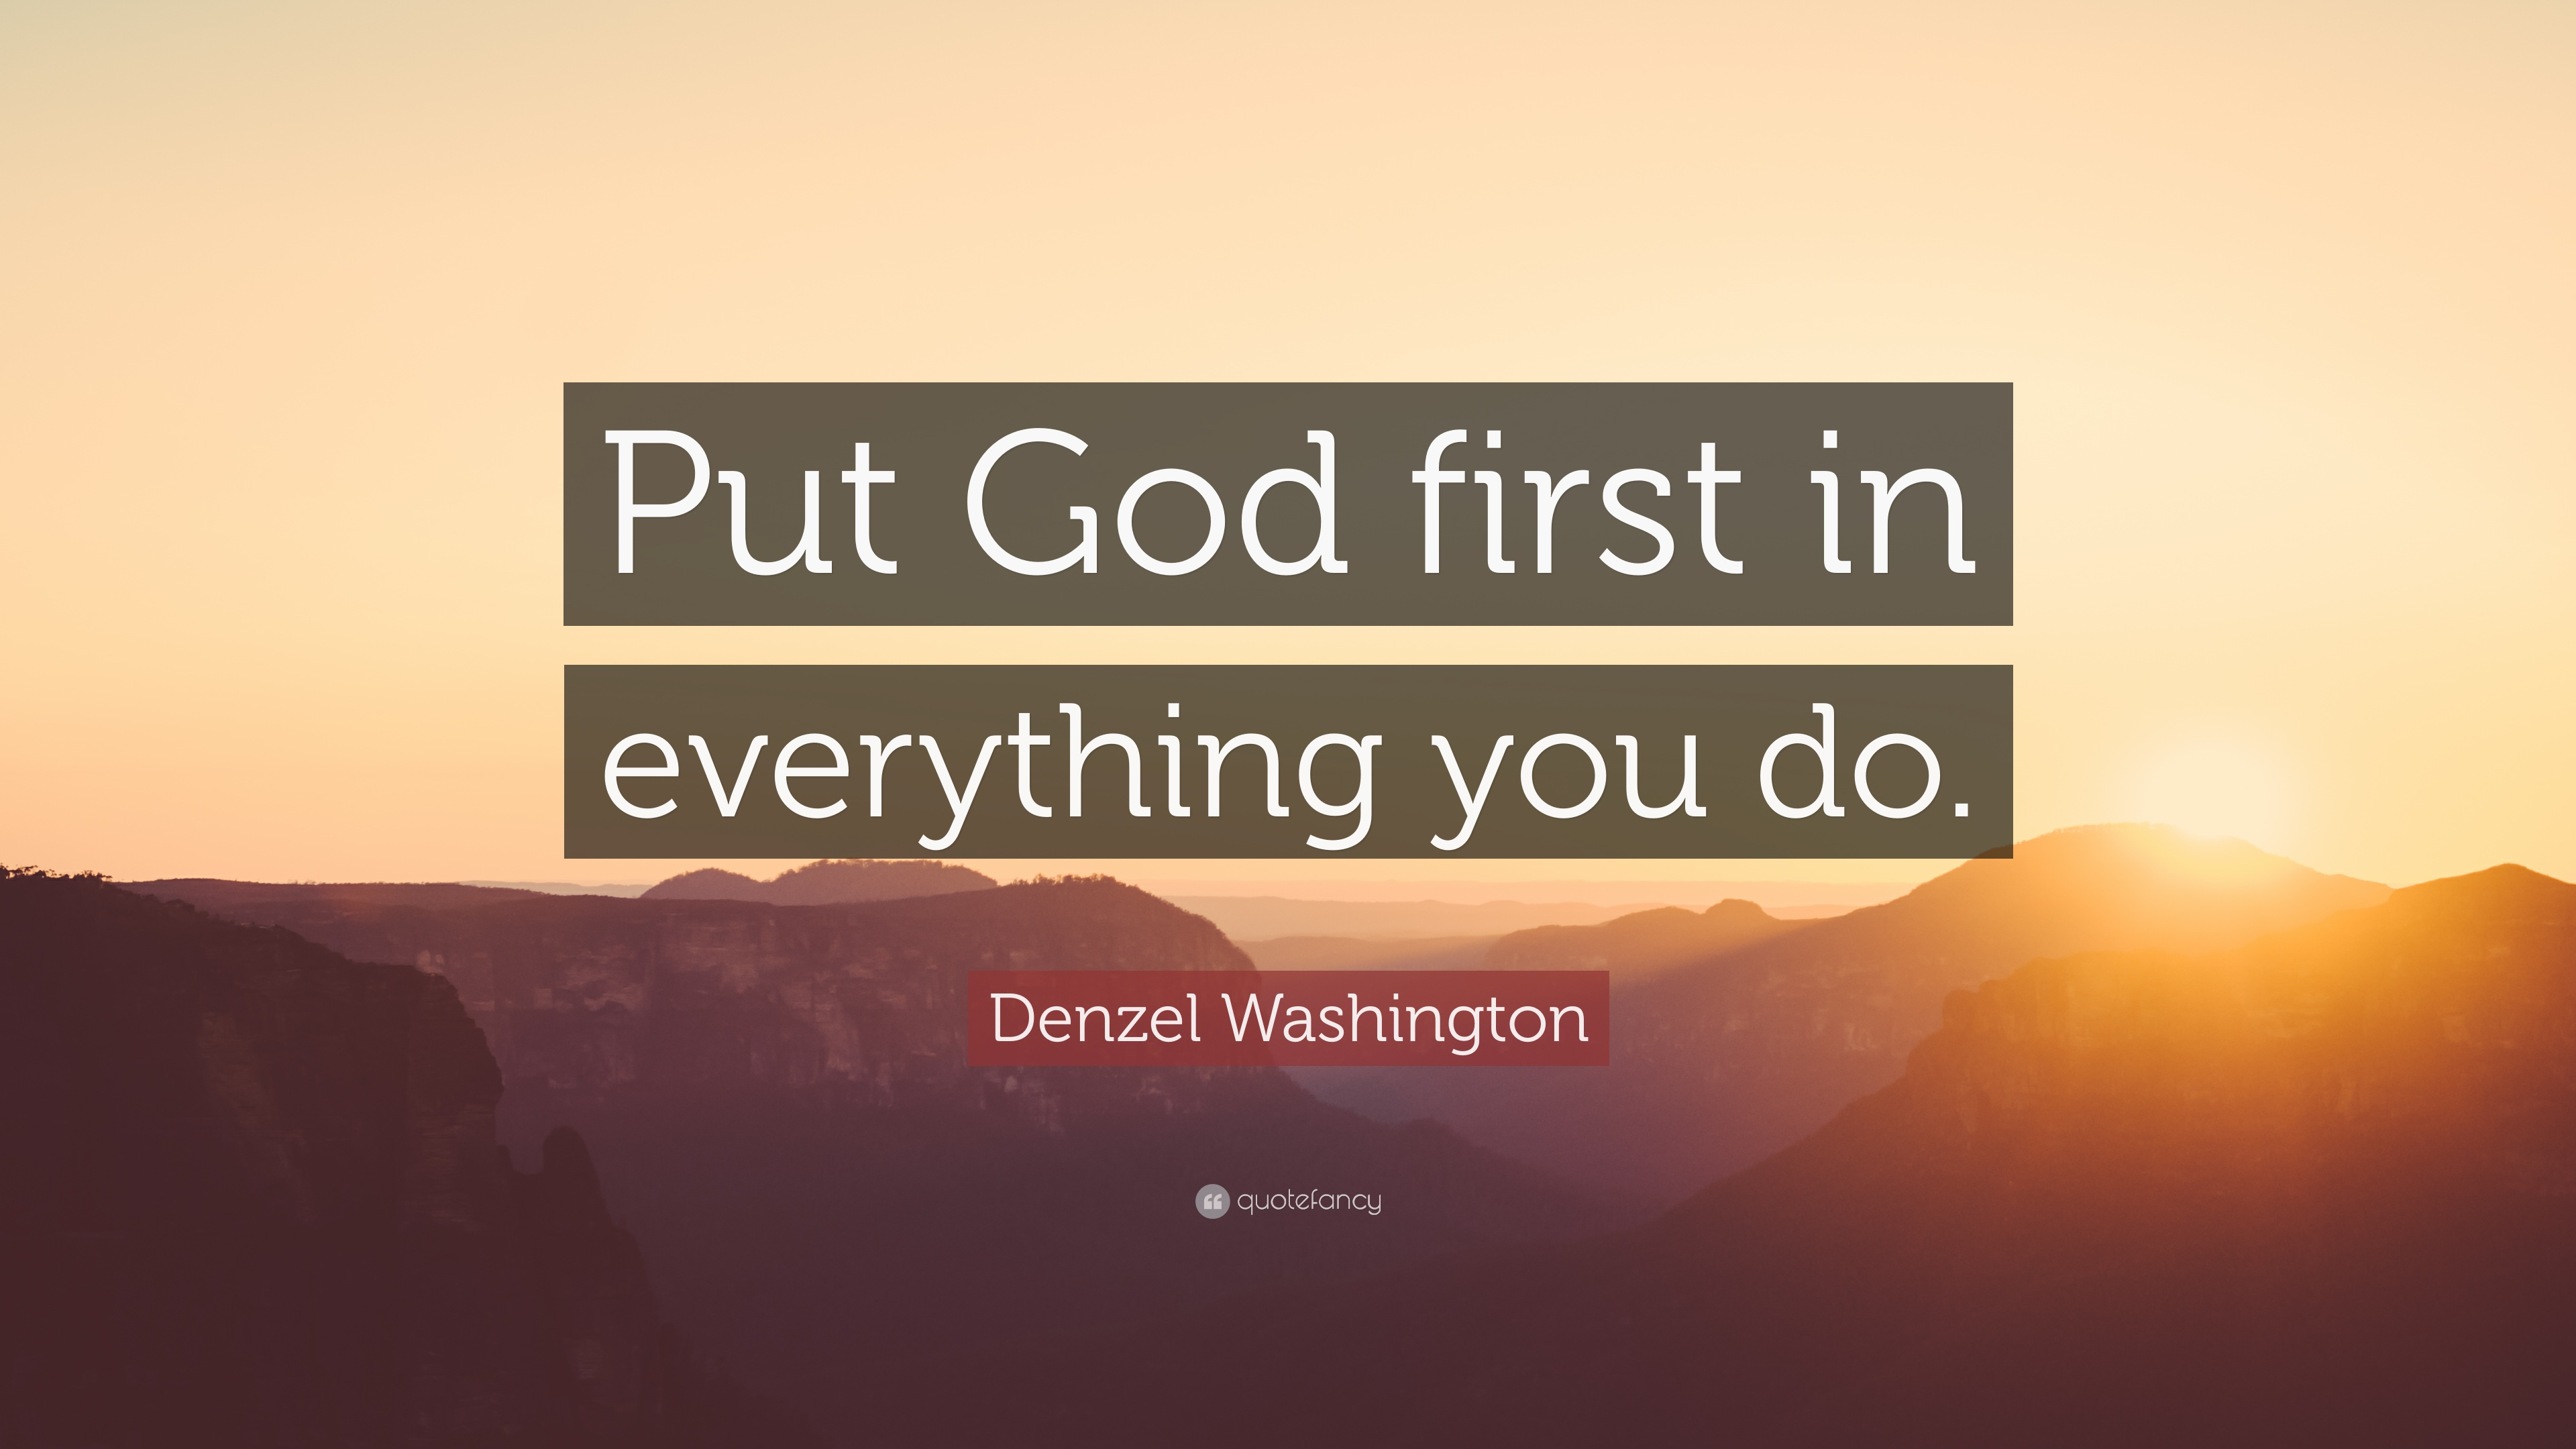 Denzel Washington Quote: Put God first in everything you